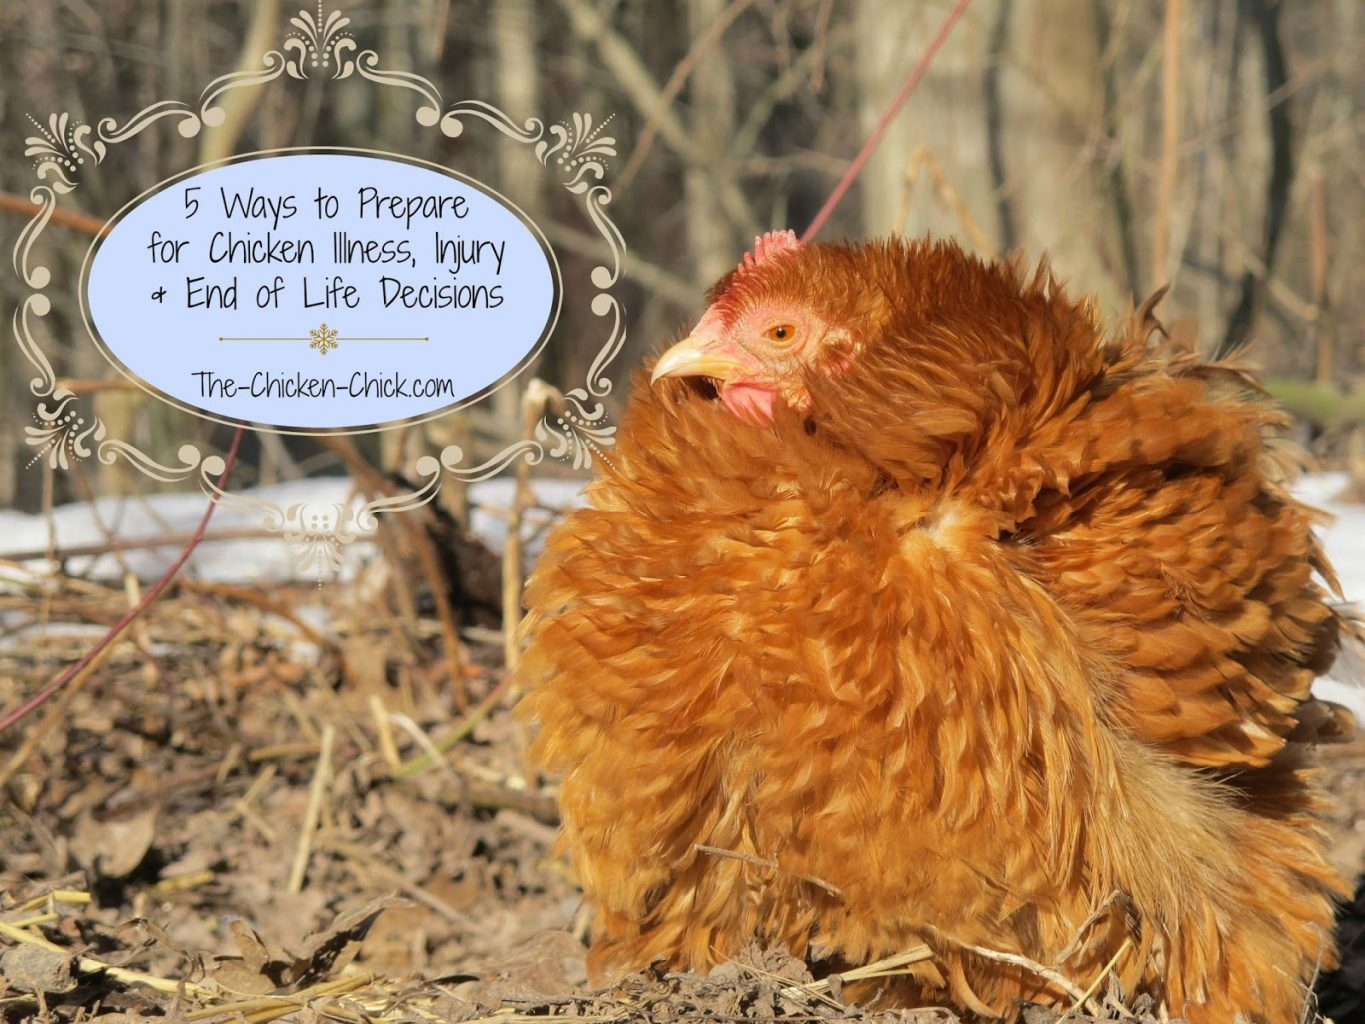 Most of us spend a great deal of time preparing for the arrival of our first chickens, but few of us give much thought to how we would handle serious injuries, illnesses and end-of-life decisions until they are upon us. My recent experience with a dying chicken made me realize that I could have been better prepared to handle certain aspects of her fatal illness, which make an already difficult time, more stressful. My hope is that by sharing my experience that you will be prepared to face the toughest part of chicken-keeping when the time comes.